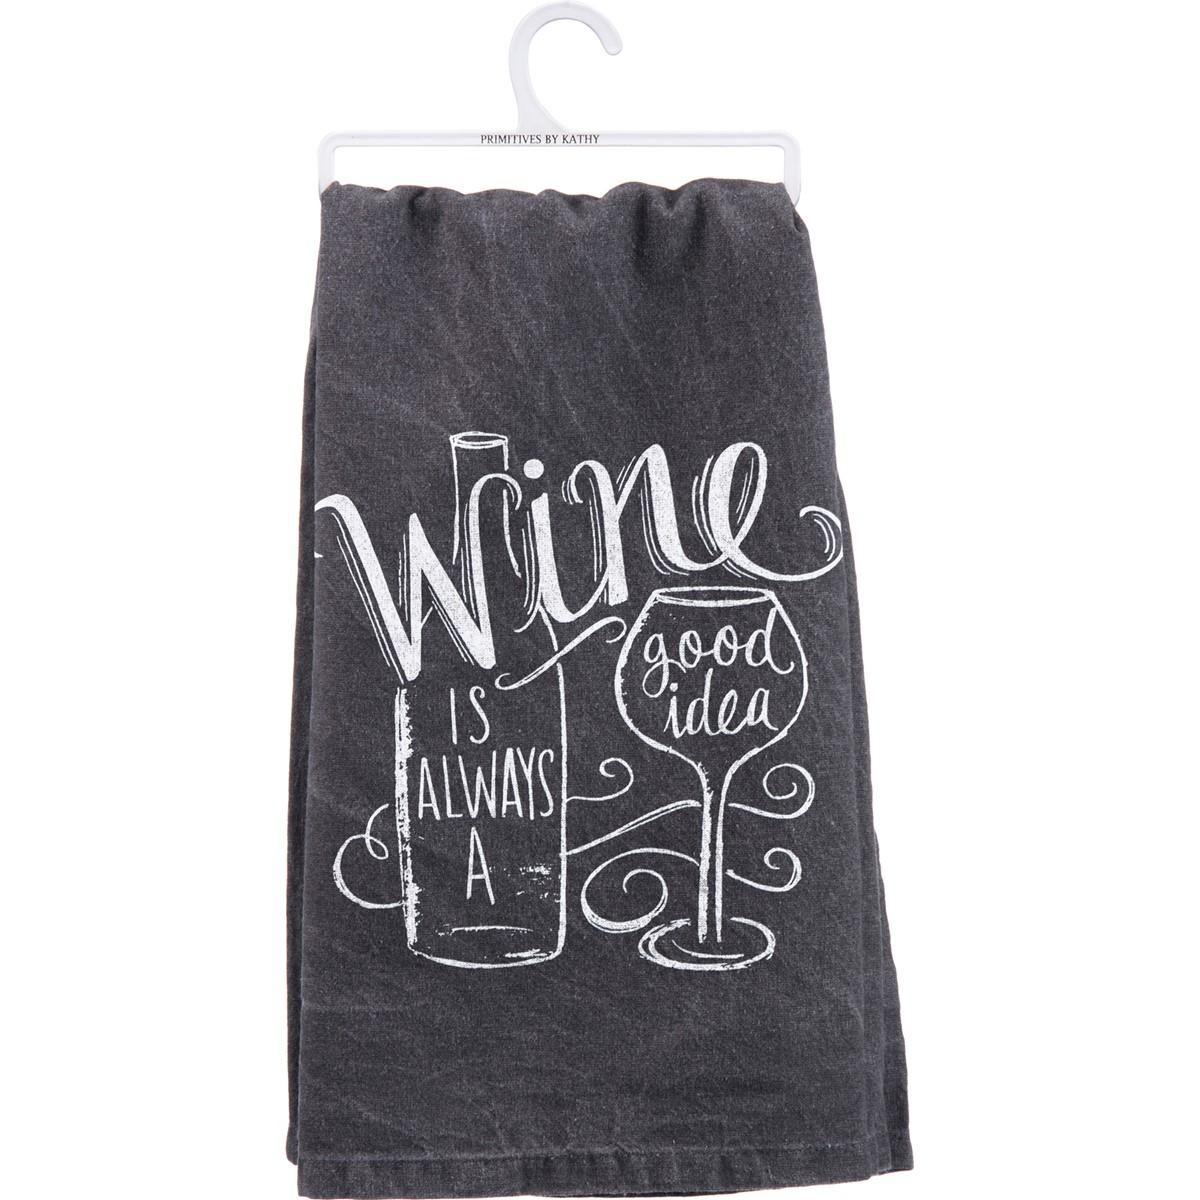 "Dish Towel - Wine Is Always A Good Idea - 28"" x 28"" - Cotton"